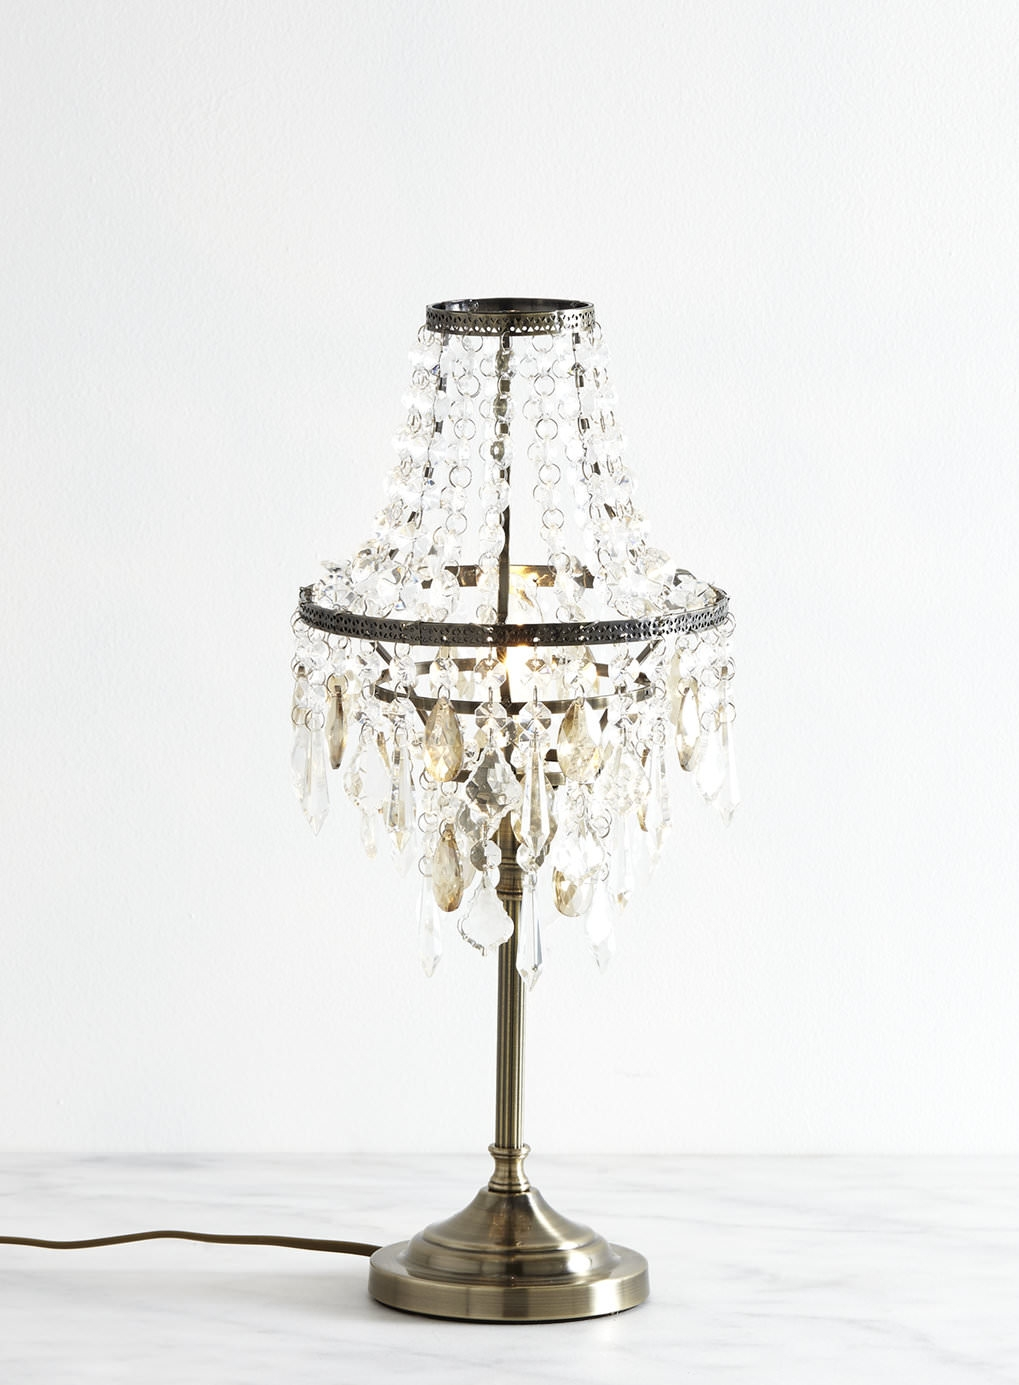 Decorative Chandelier Table Lamp Lighting Fixtures All In One In Table Chandeliers (View 8 of 15)